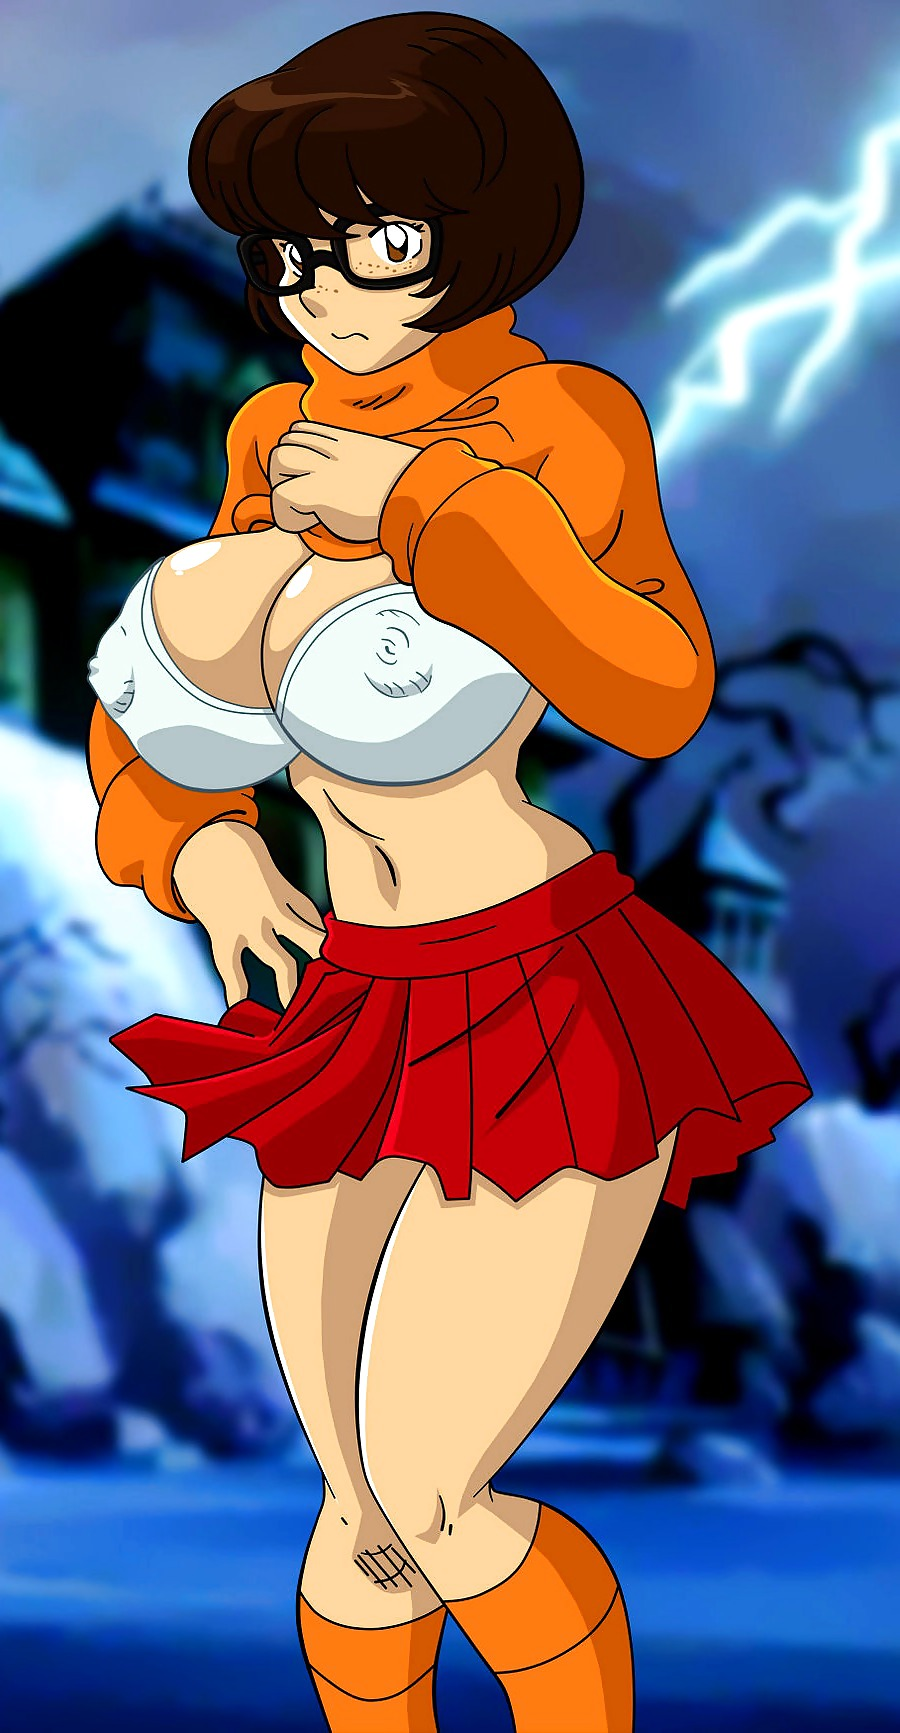 Scooby bulma sexy and